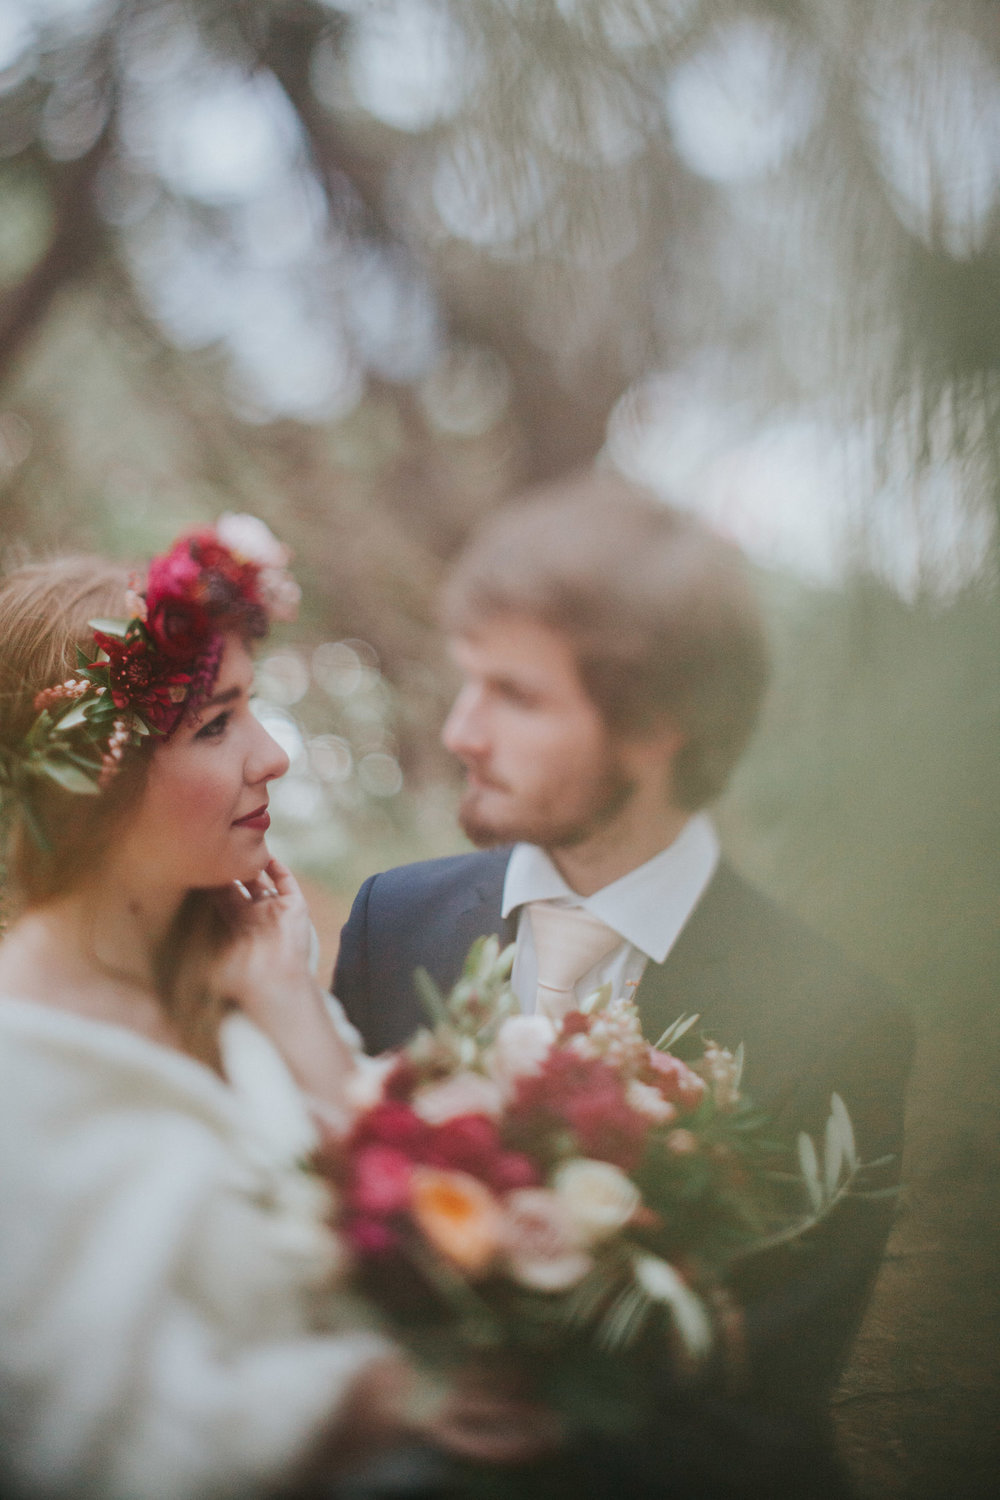 free lensing wedding photography techniques